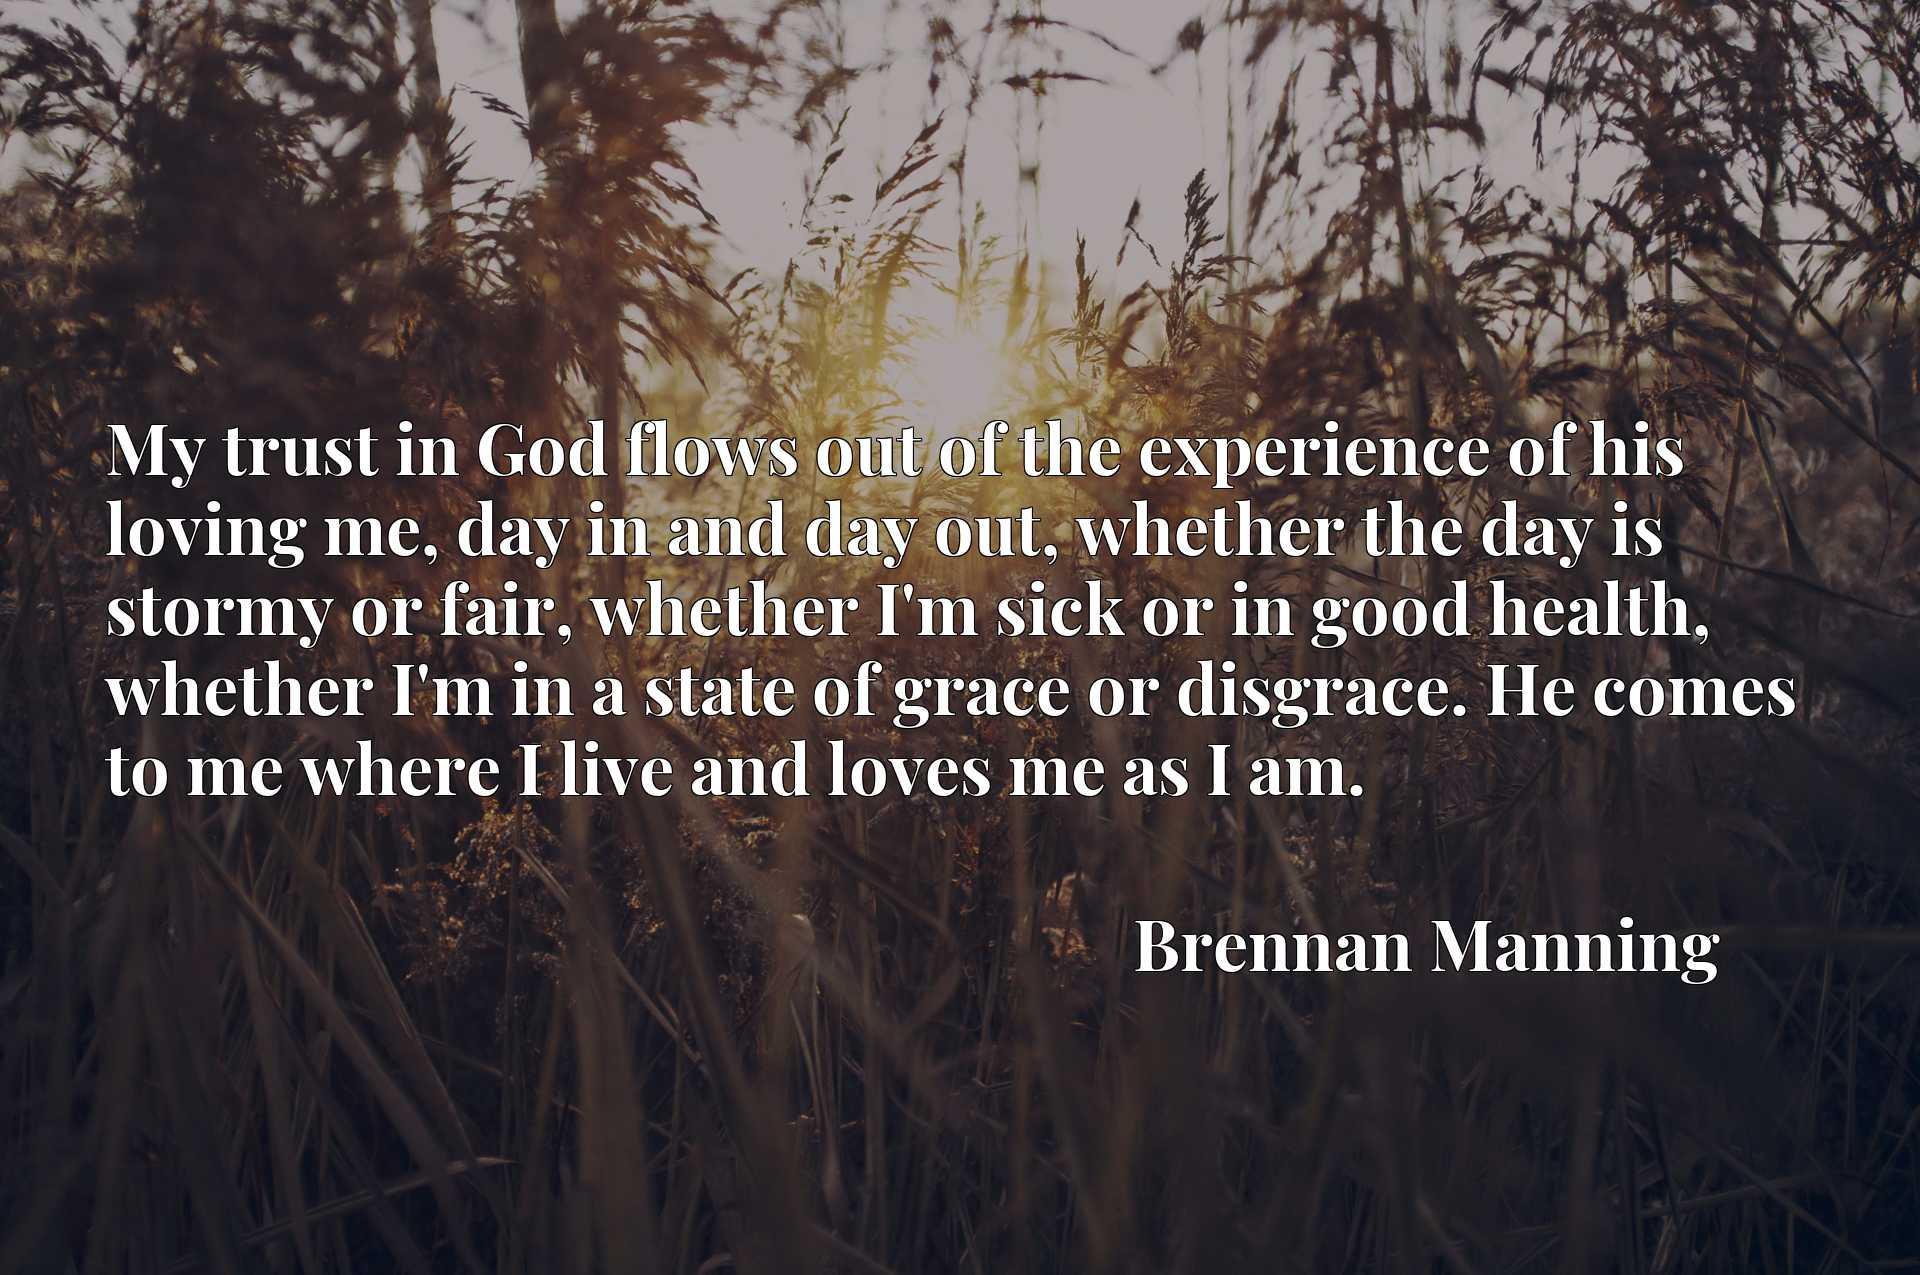 My trust in God flows out of the experience of his loving me, day in and day out, whether the day is stormy or fair, whether I'm sick or in good health, whether I'm in a state of grace or disgrace. He comes to me where I live and loves me as I am.